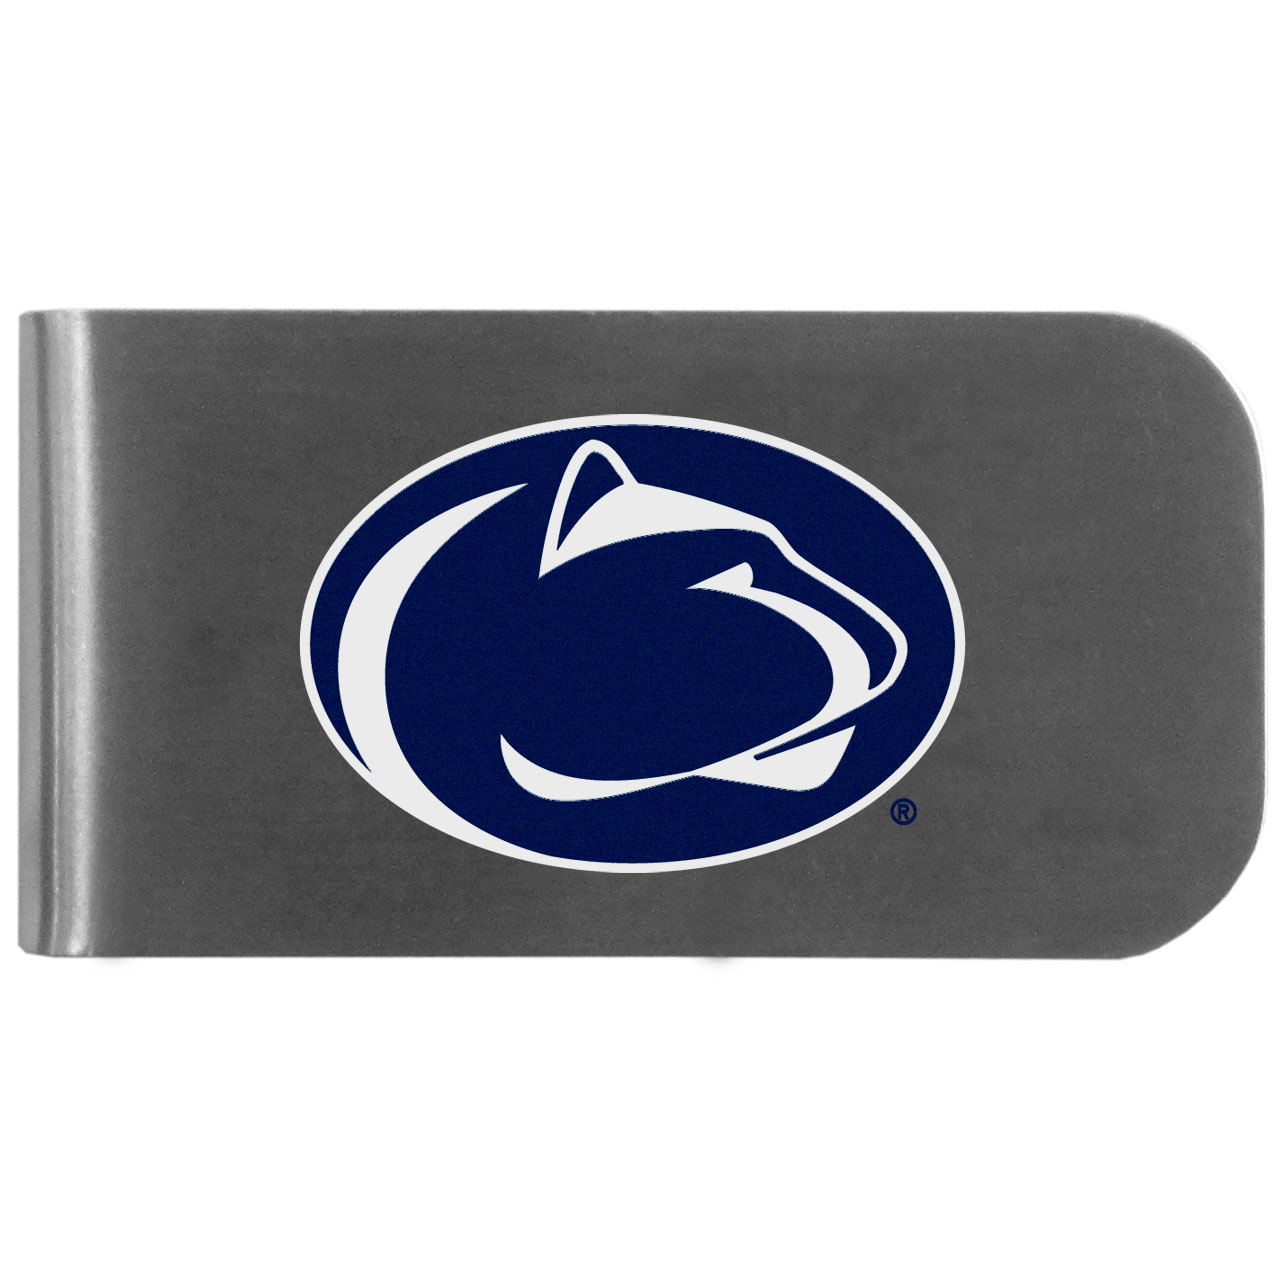 Penn St. Nittany Lions Logo Bottle Opener Money Clip - This unique money clip features a classic, brushed-metal finish with a handy bottle opener feature on the back. The clip has the Penn St. Nittany Lions logo expertly printed on the front of the clip.